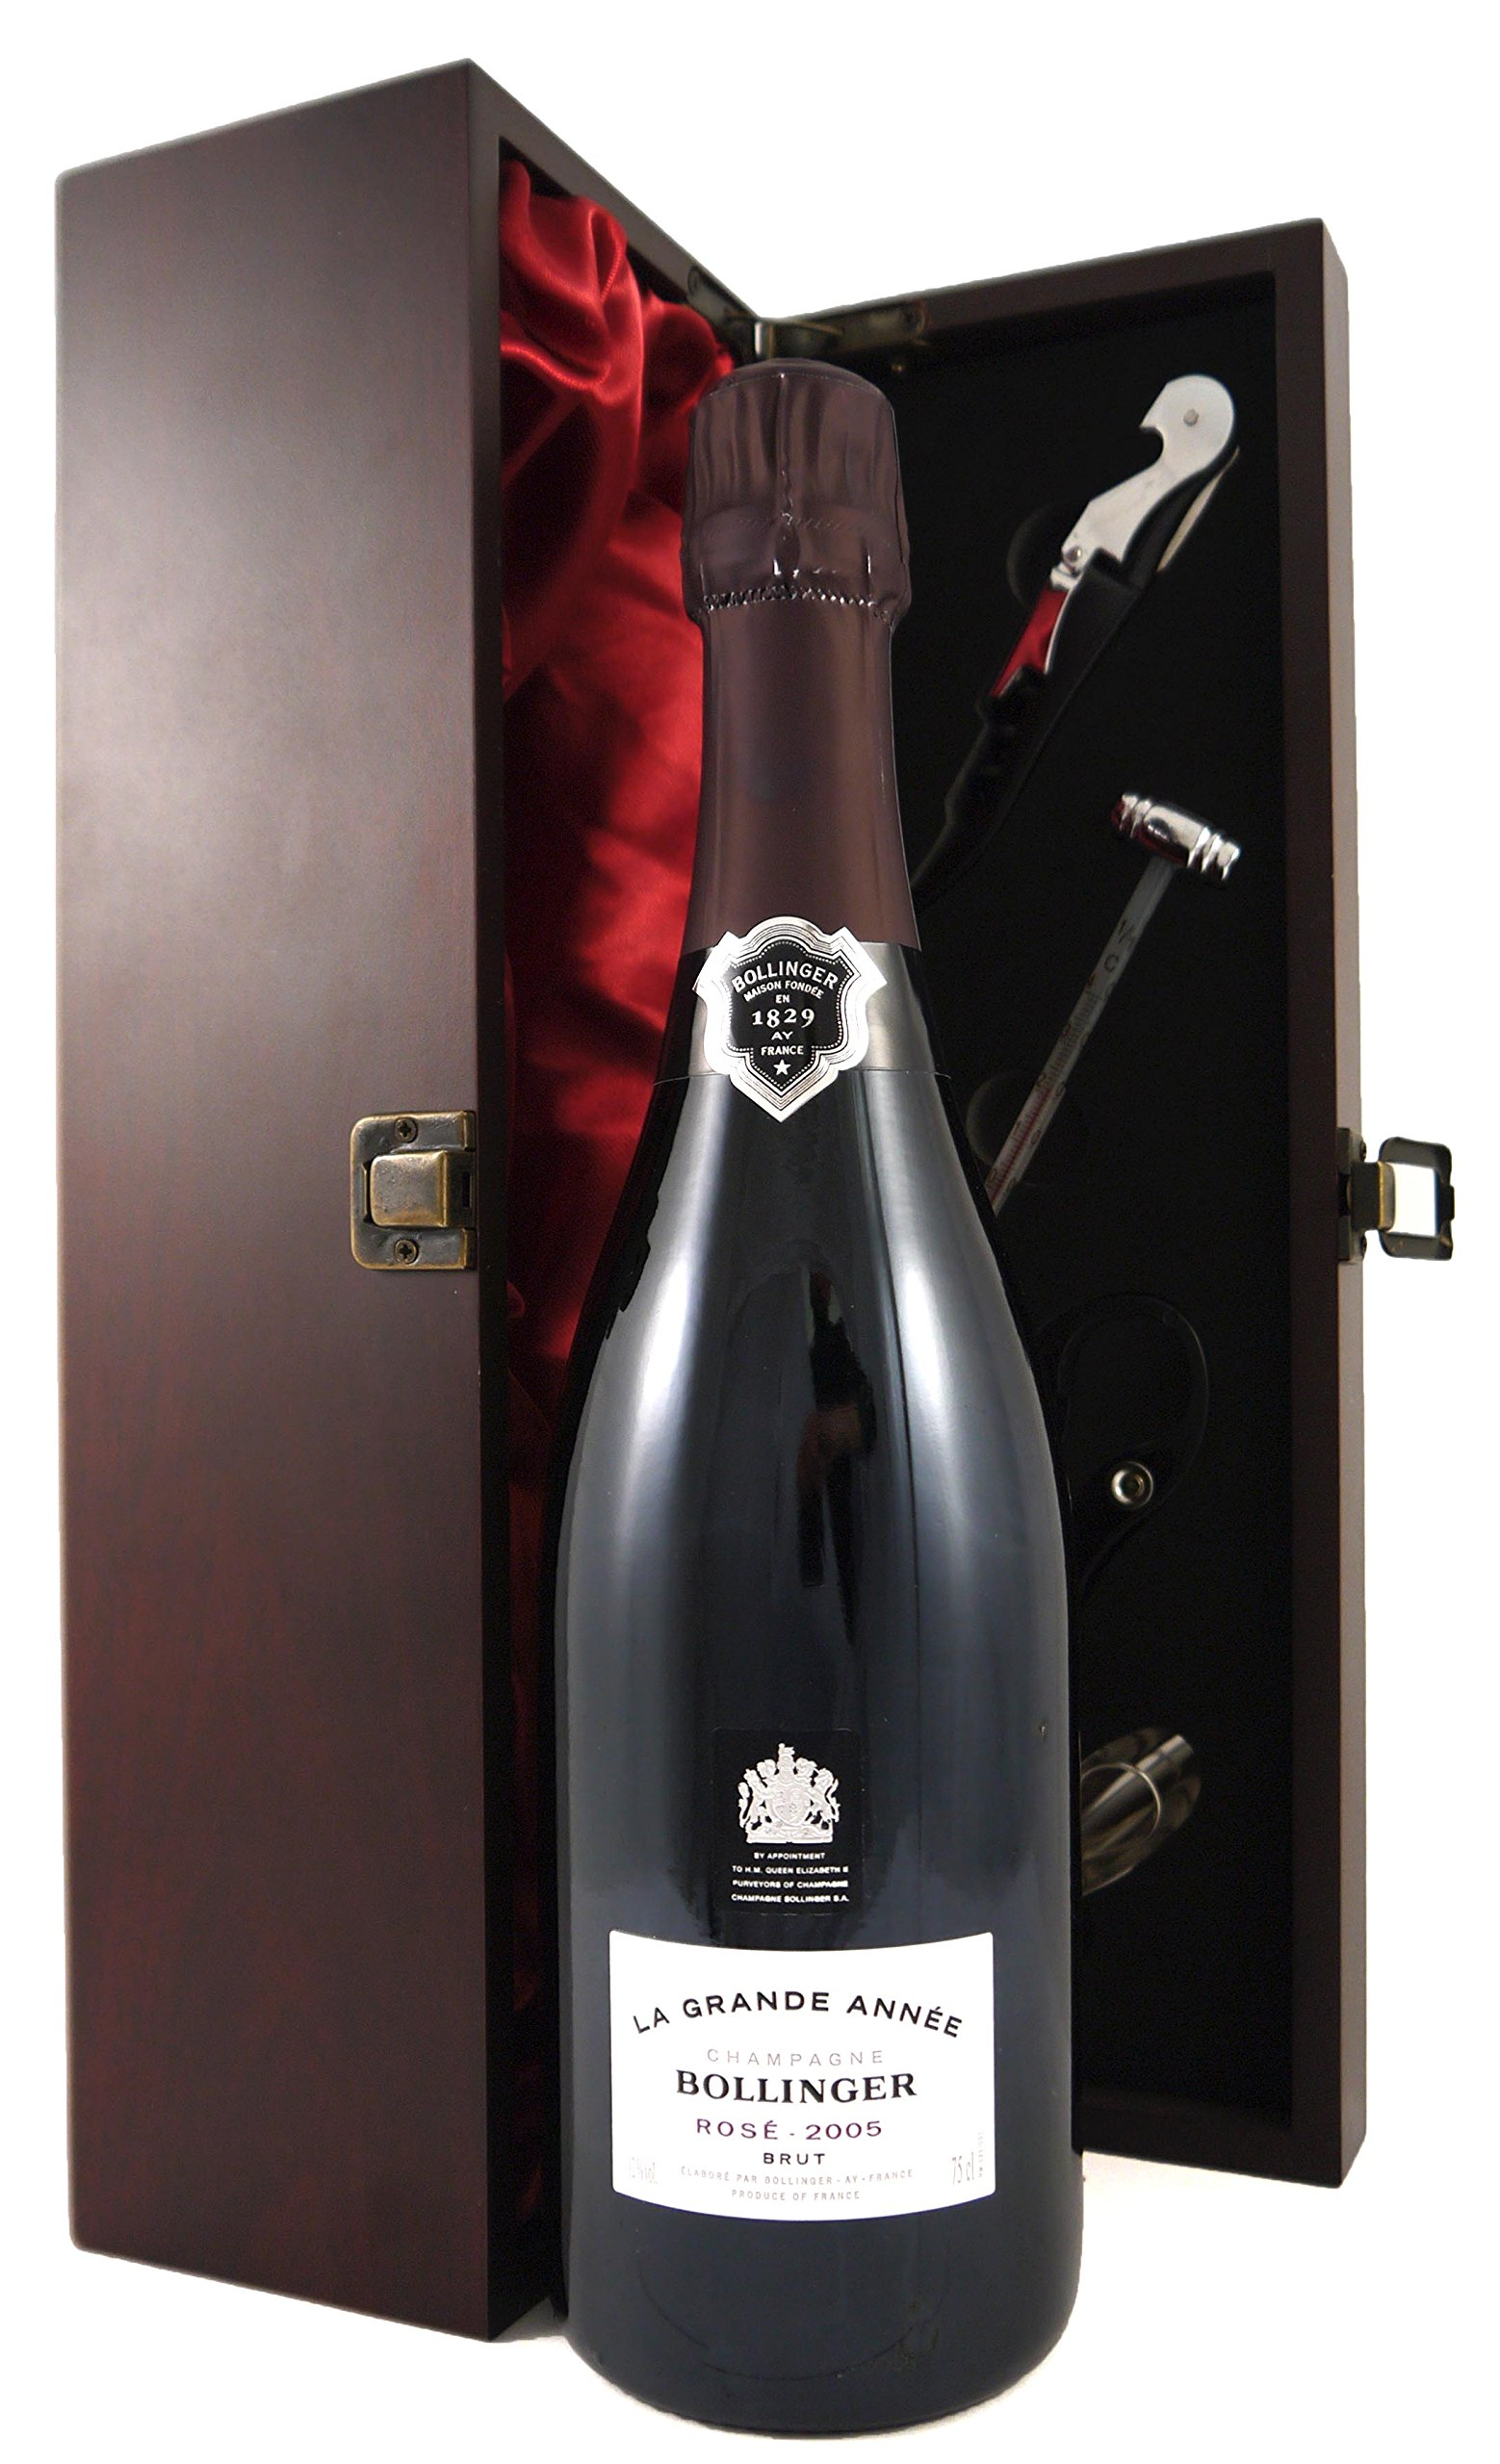 2005 Bollinger Rosé Grand Annee Vintage Champagne in a silk lined presentation box with four wine accessories